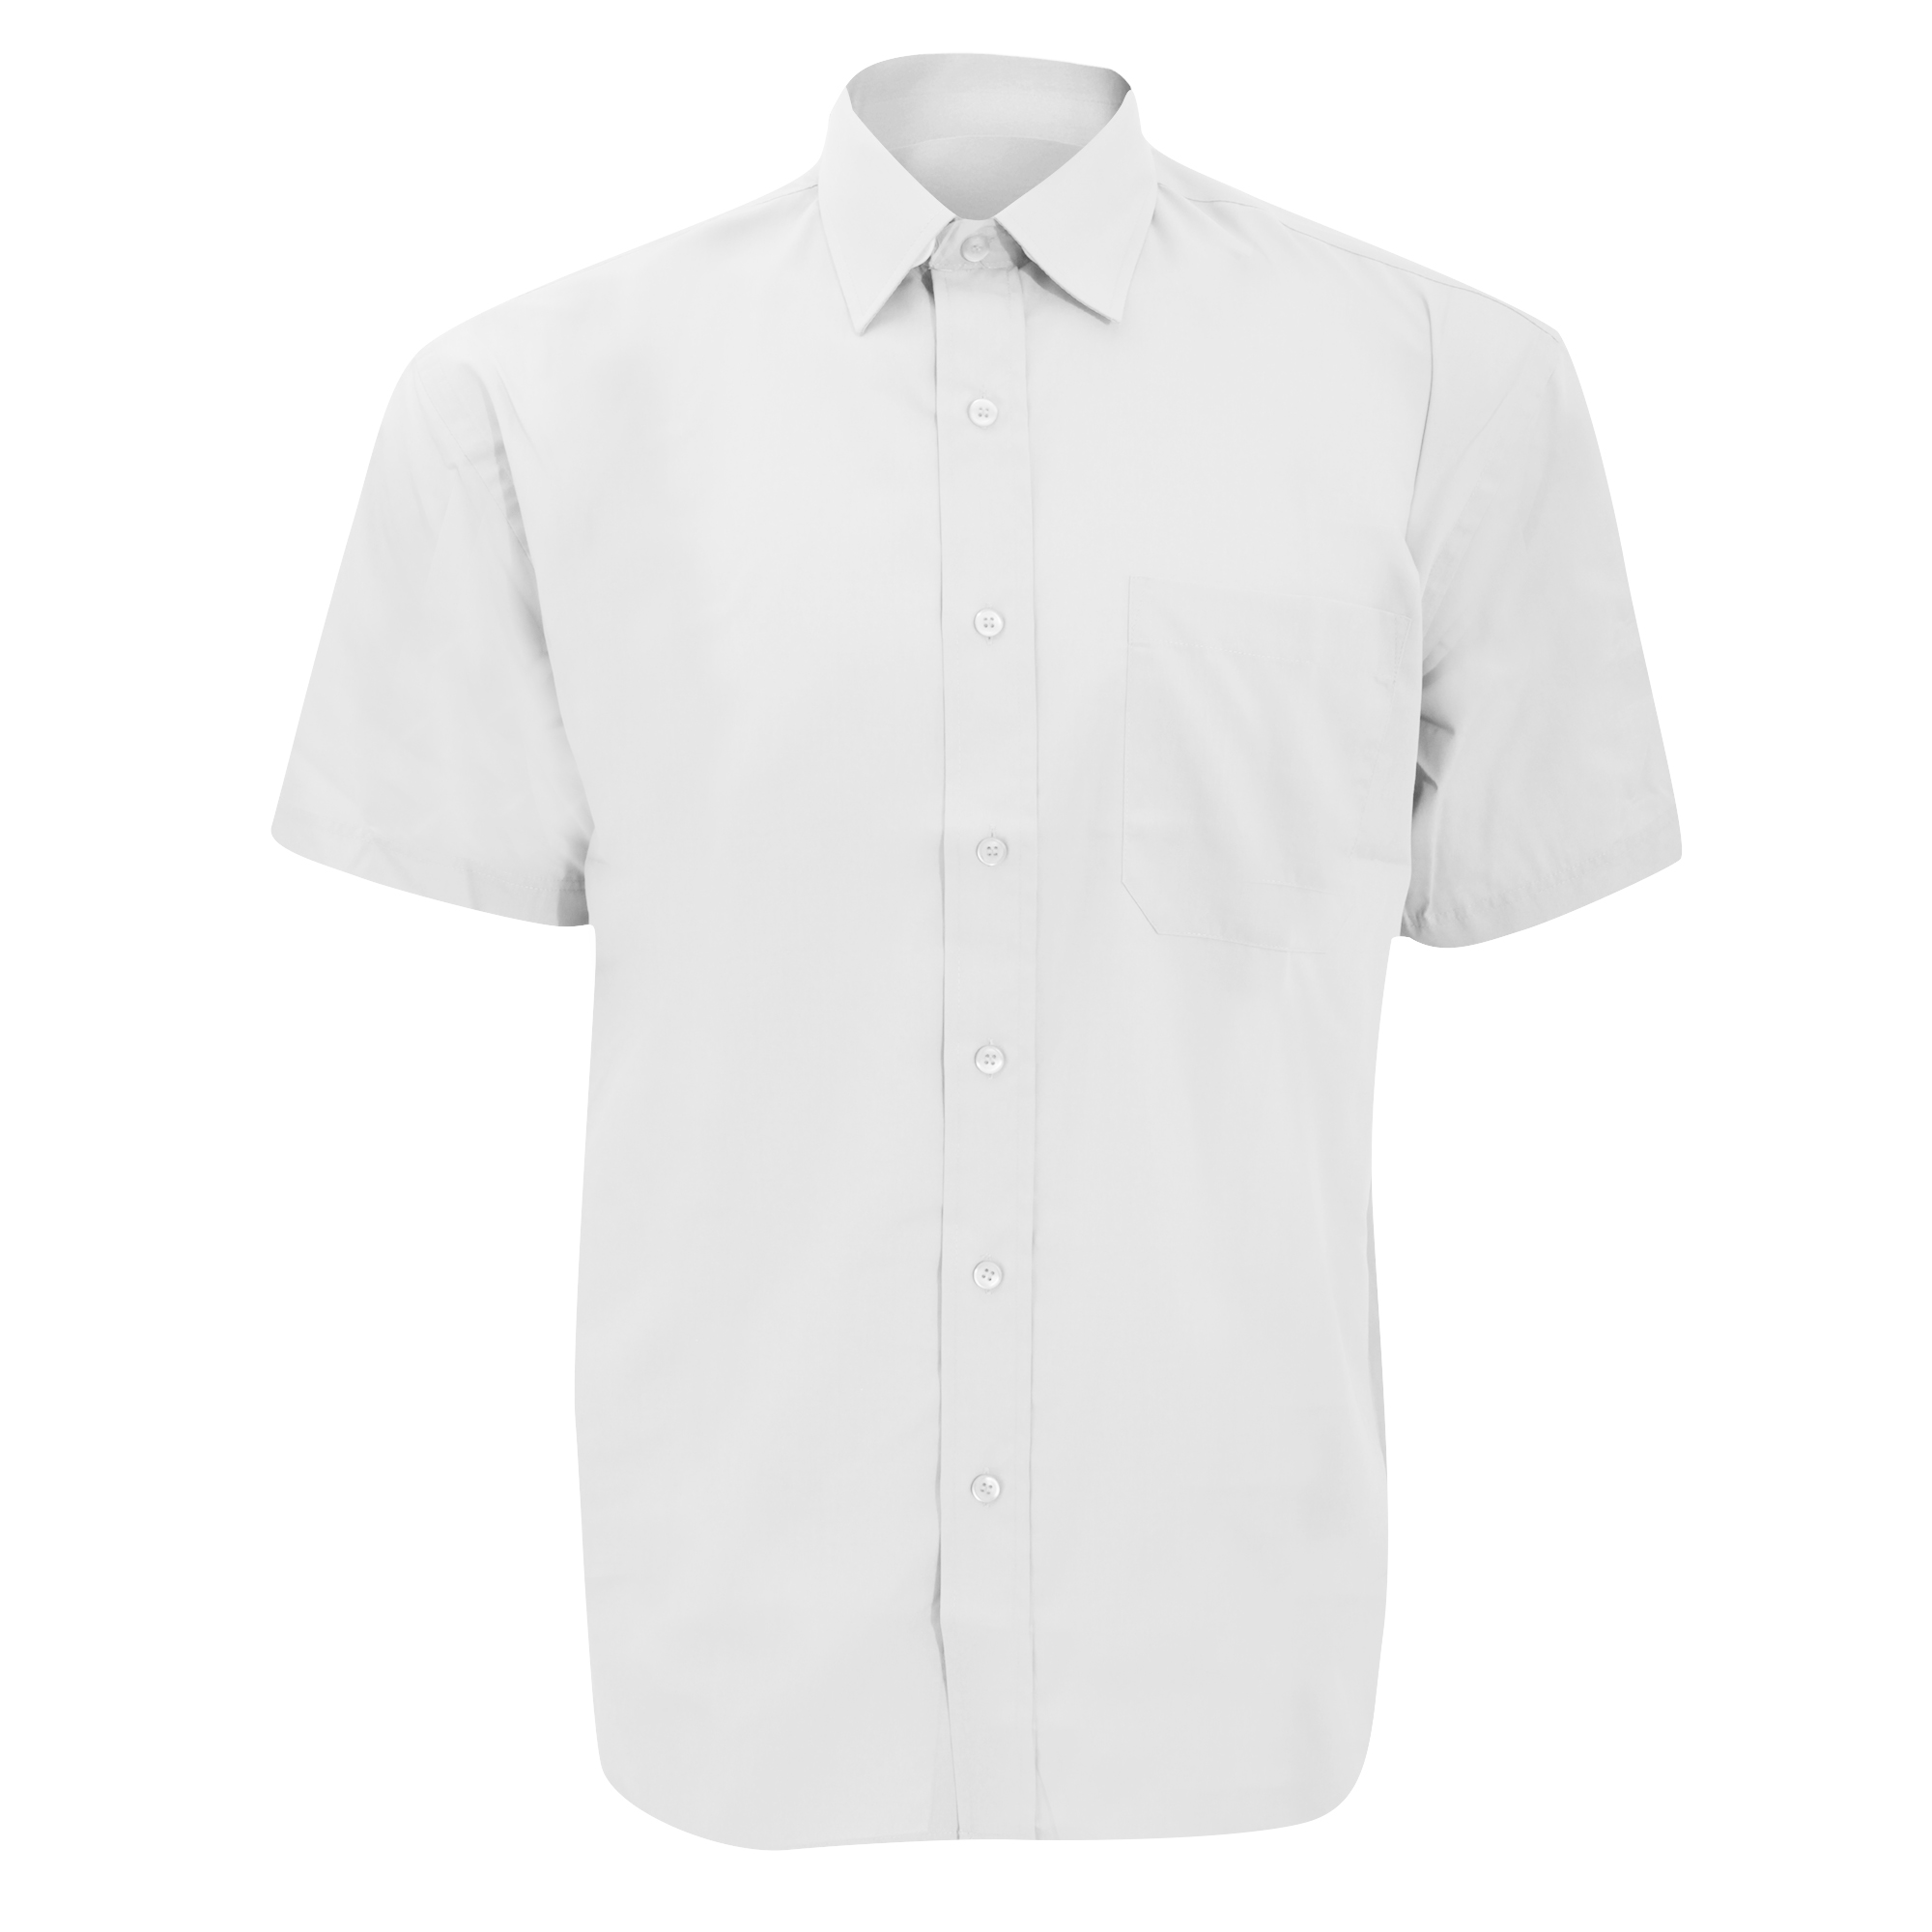 Russell Collection Mens Short Sleeve Poly-Cotton Easy Care Poplin Shirt (17) (White)